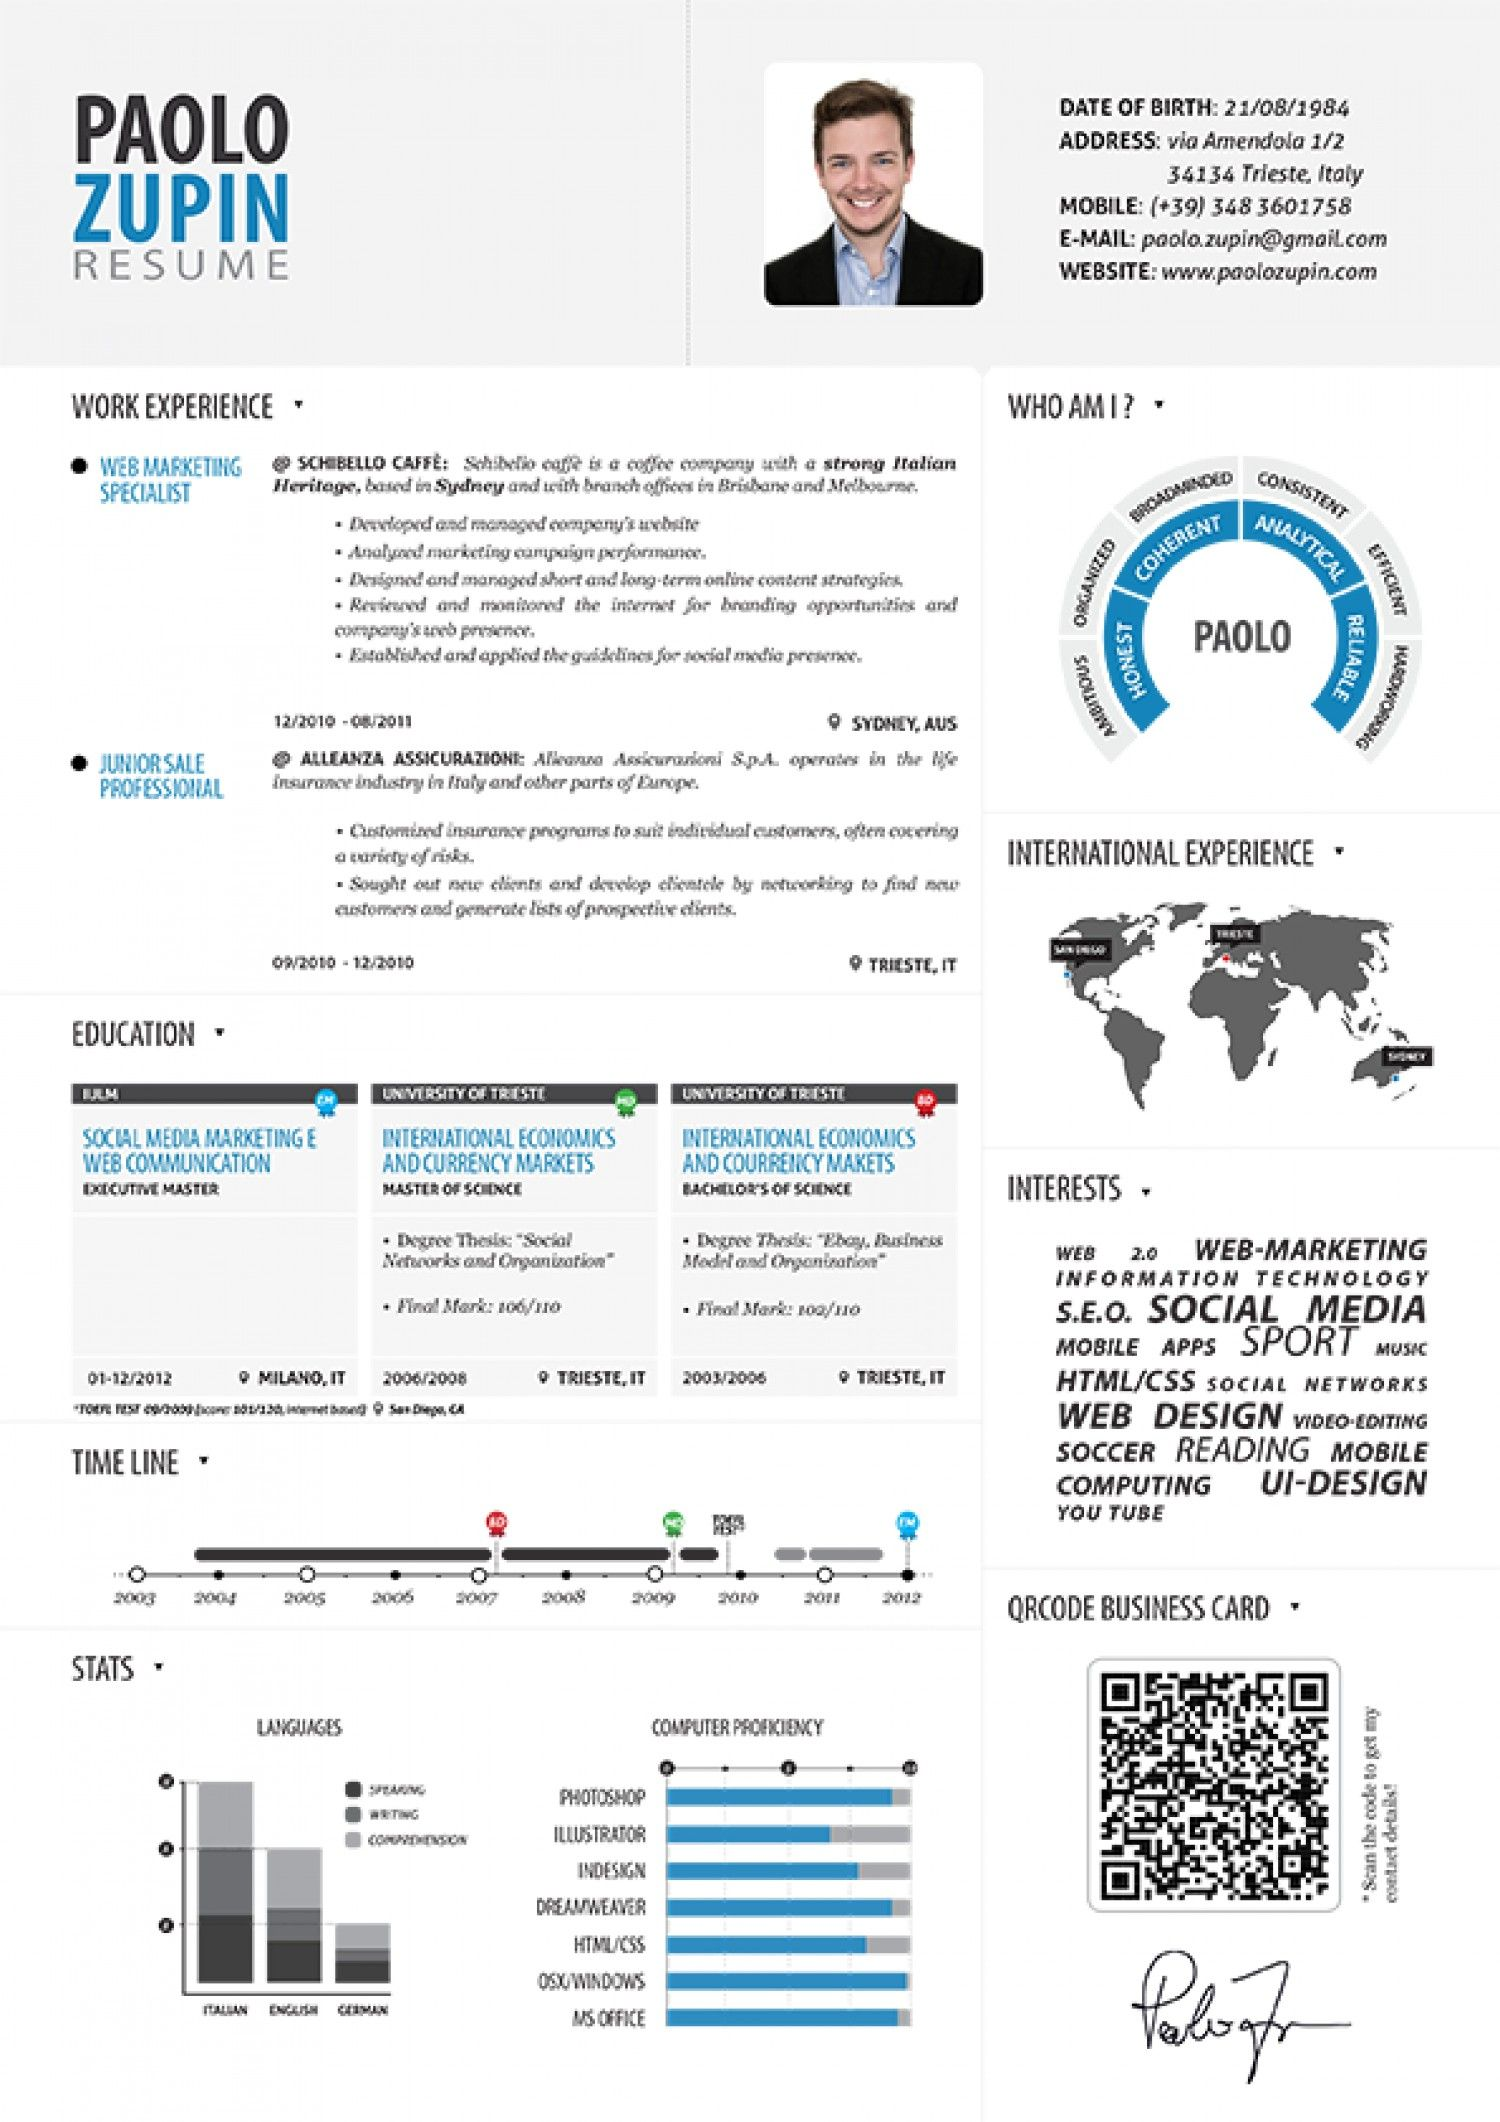 Opposenewapstandardsus  Marvelous  Images About Resume  Cv Design On Pinterest  Infographic  With Great  Images About Resume  Cv Design On Pinterest  Infographic Resume Resume And Resume Design With Enchanting Resume Samples For Customer Service Also Security Supervisor Resume In Addition Computer Science Student Resume And Training Manager Resume As Well As Cdl Resume Additionally Resume Template Online From Pinterestcom With Opposenewapstandardsus  Great  Images About Resume  Cv Design On Pinterest  Infographic  With Enchanting  Images About Resume  Cv Design On Pinterest  Infographic Resume Resume And Resume Design And Marvelous Resume Samples For Customer Service Also Security Supervisor Resume In Addition Computer Science Student Resume From Pinterestcom